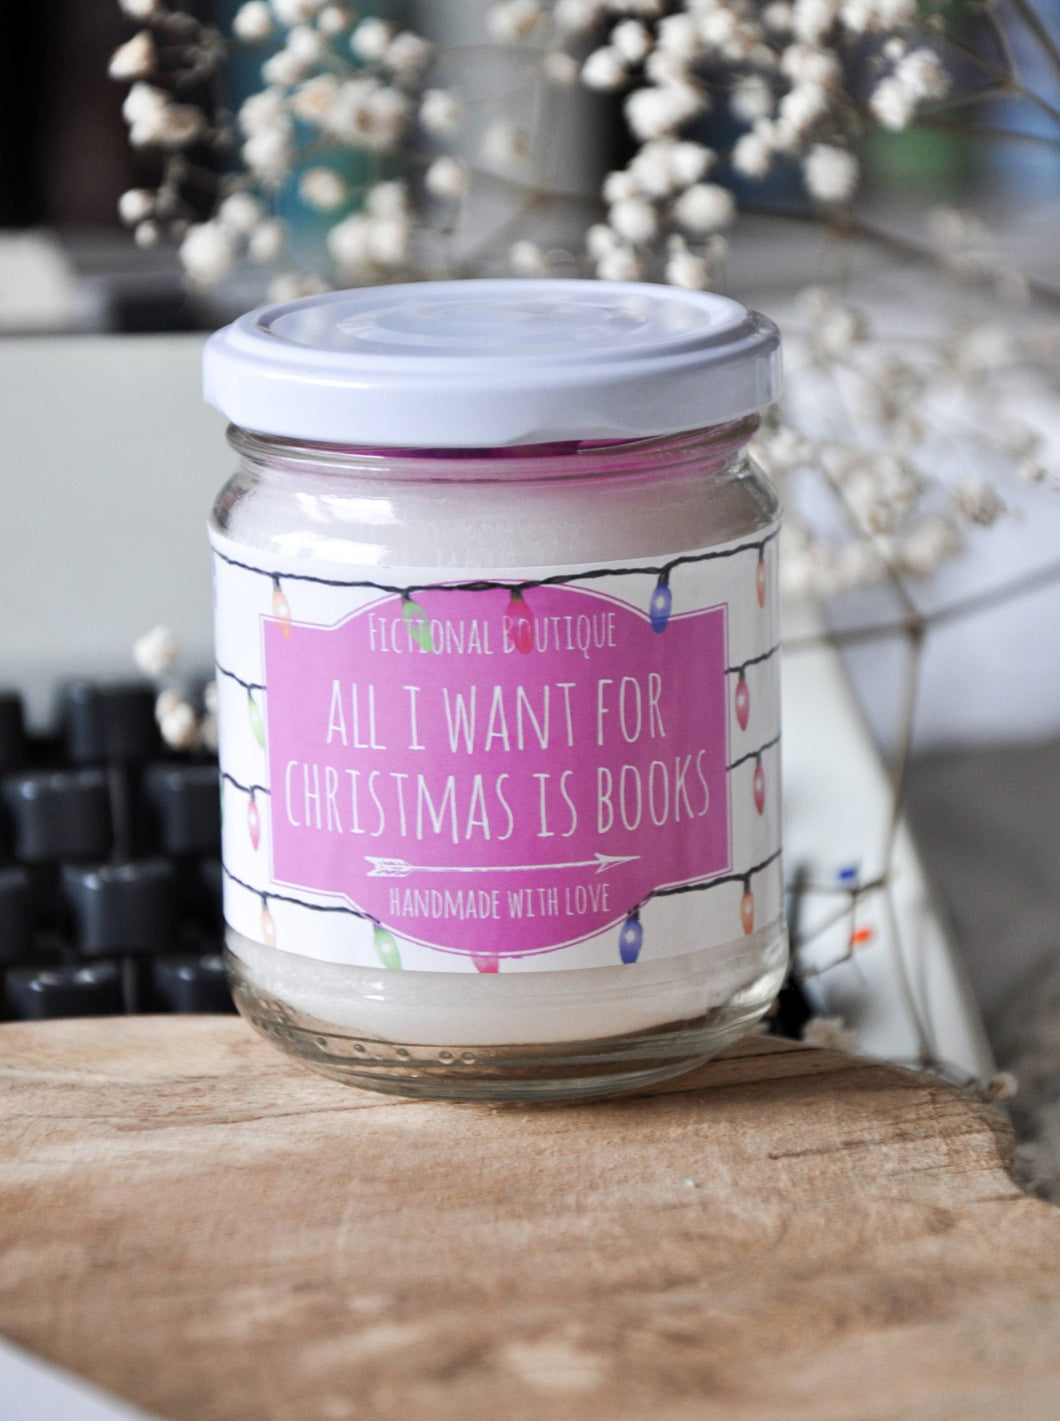 All I Want For Christmas Is Books Candle